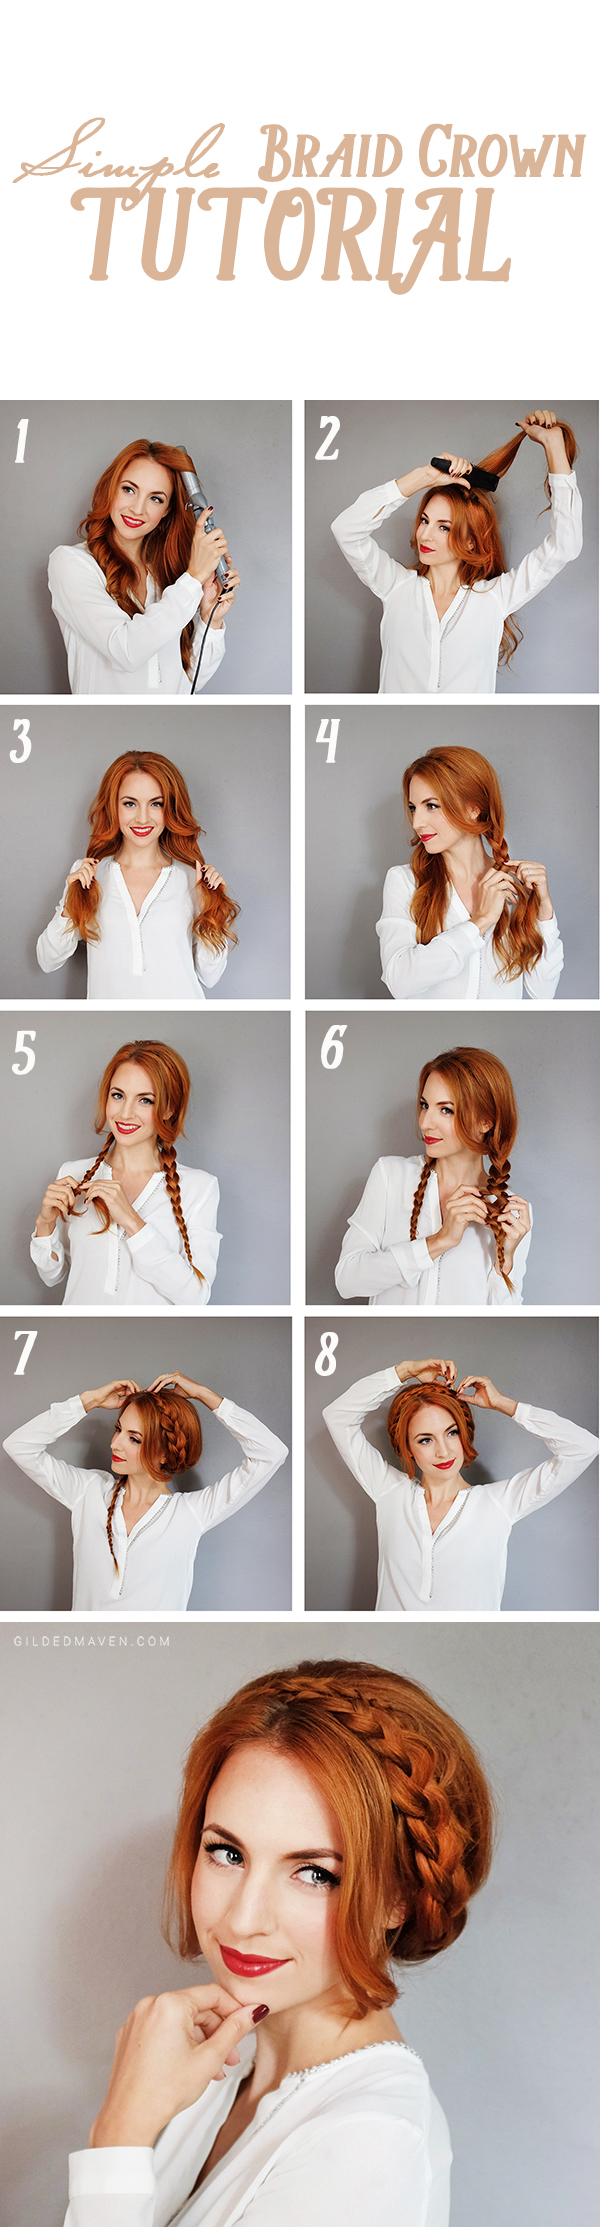 Braid Crown Tutorial - Gotta PIN THIS! I had no idea this was SO EASY! Gilded Maven via gildedmaven.com